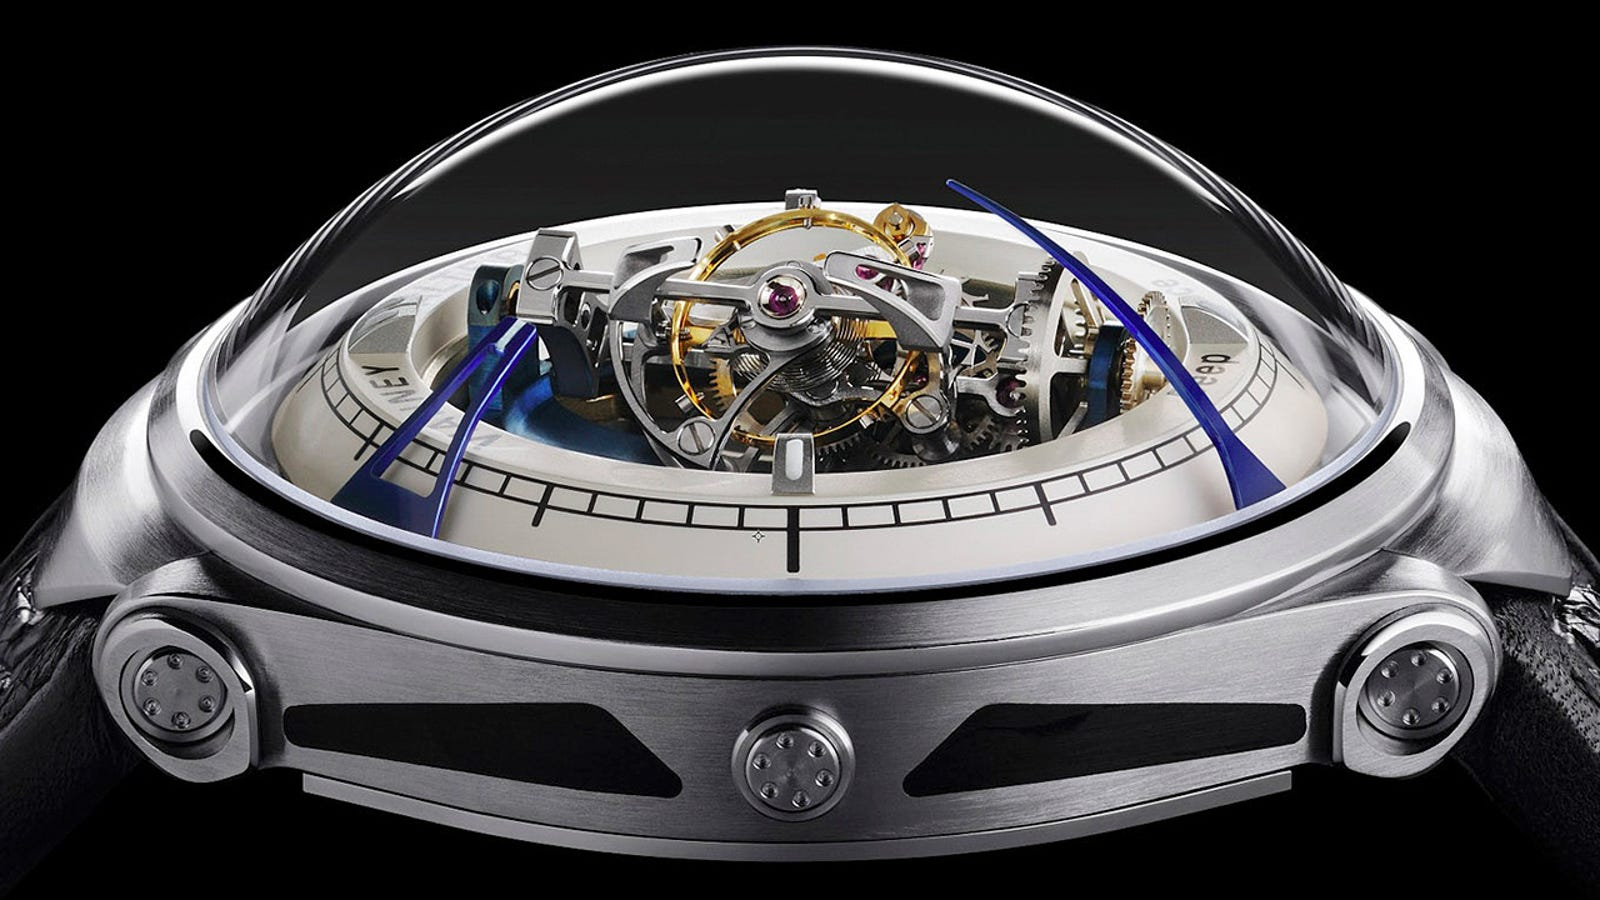 A Retro-Futuristic Watch Torn From the Pages of Science Fiction